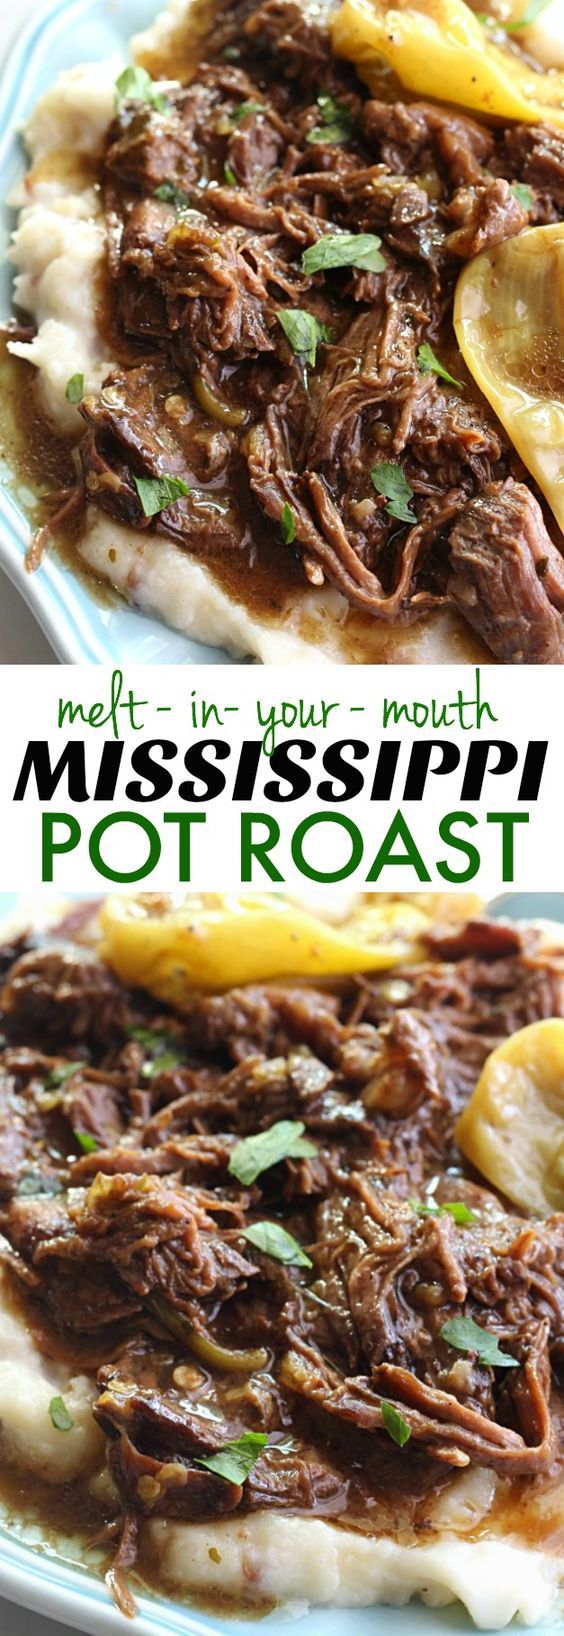 Mississippi Pot Roast (The BEST EVER Pot Roast)